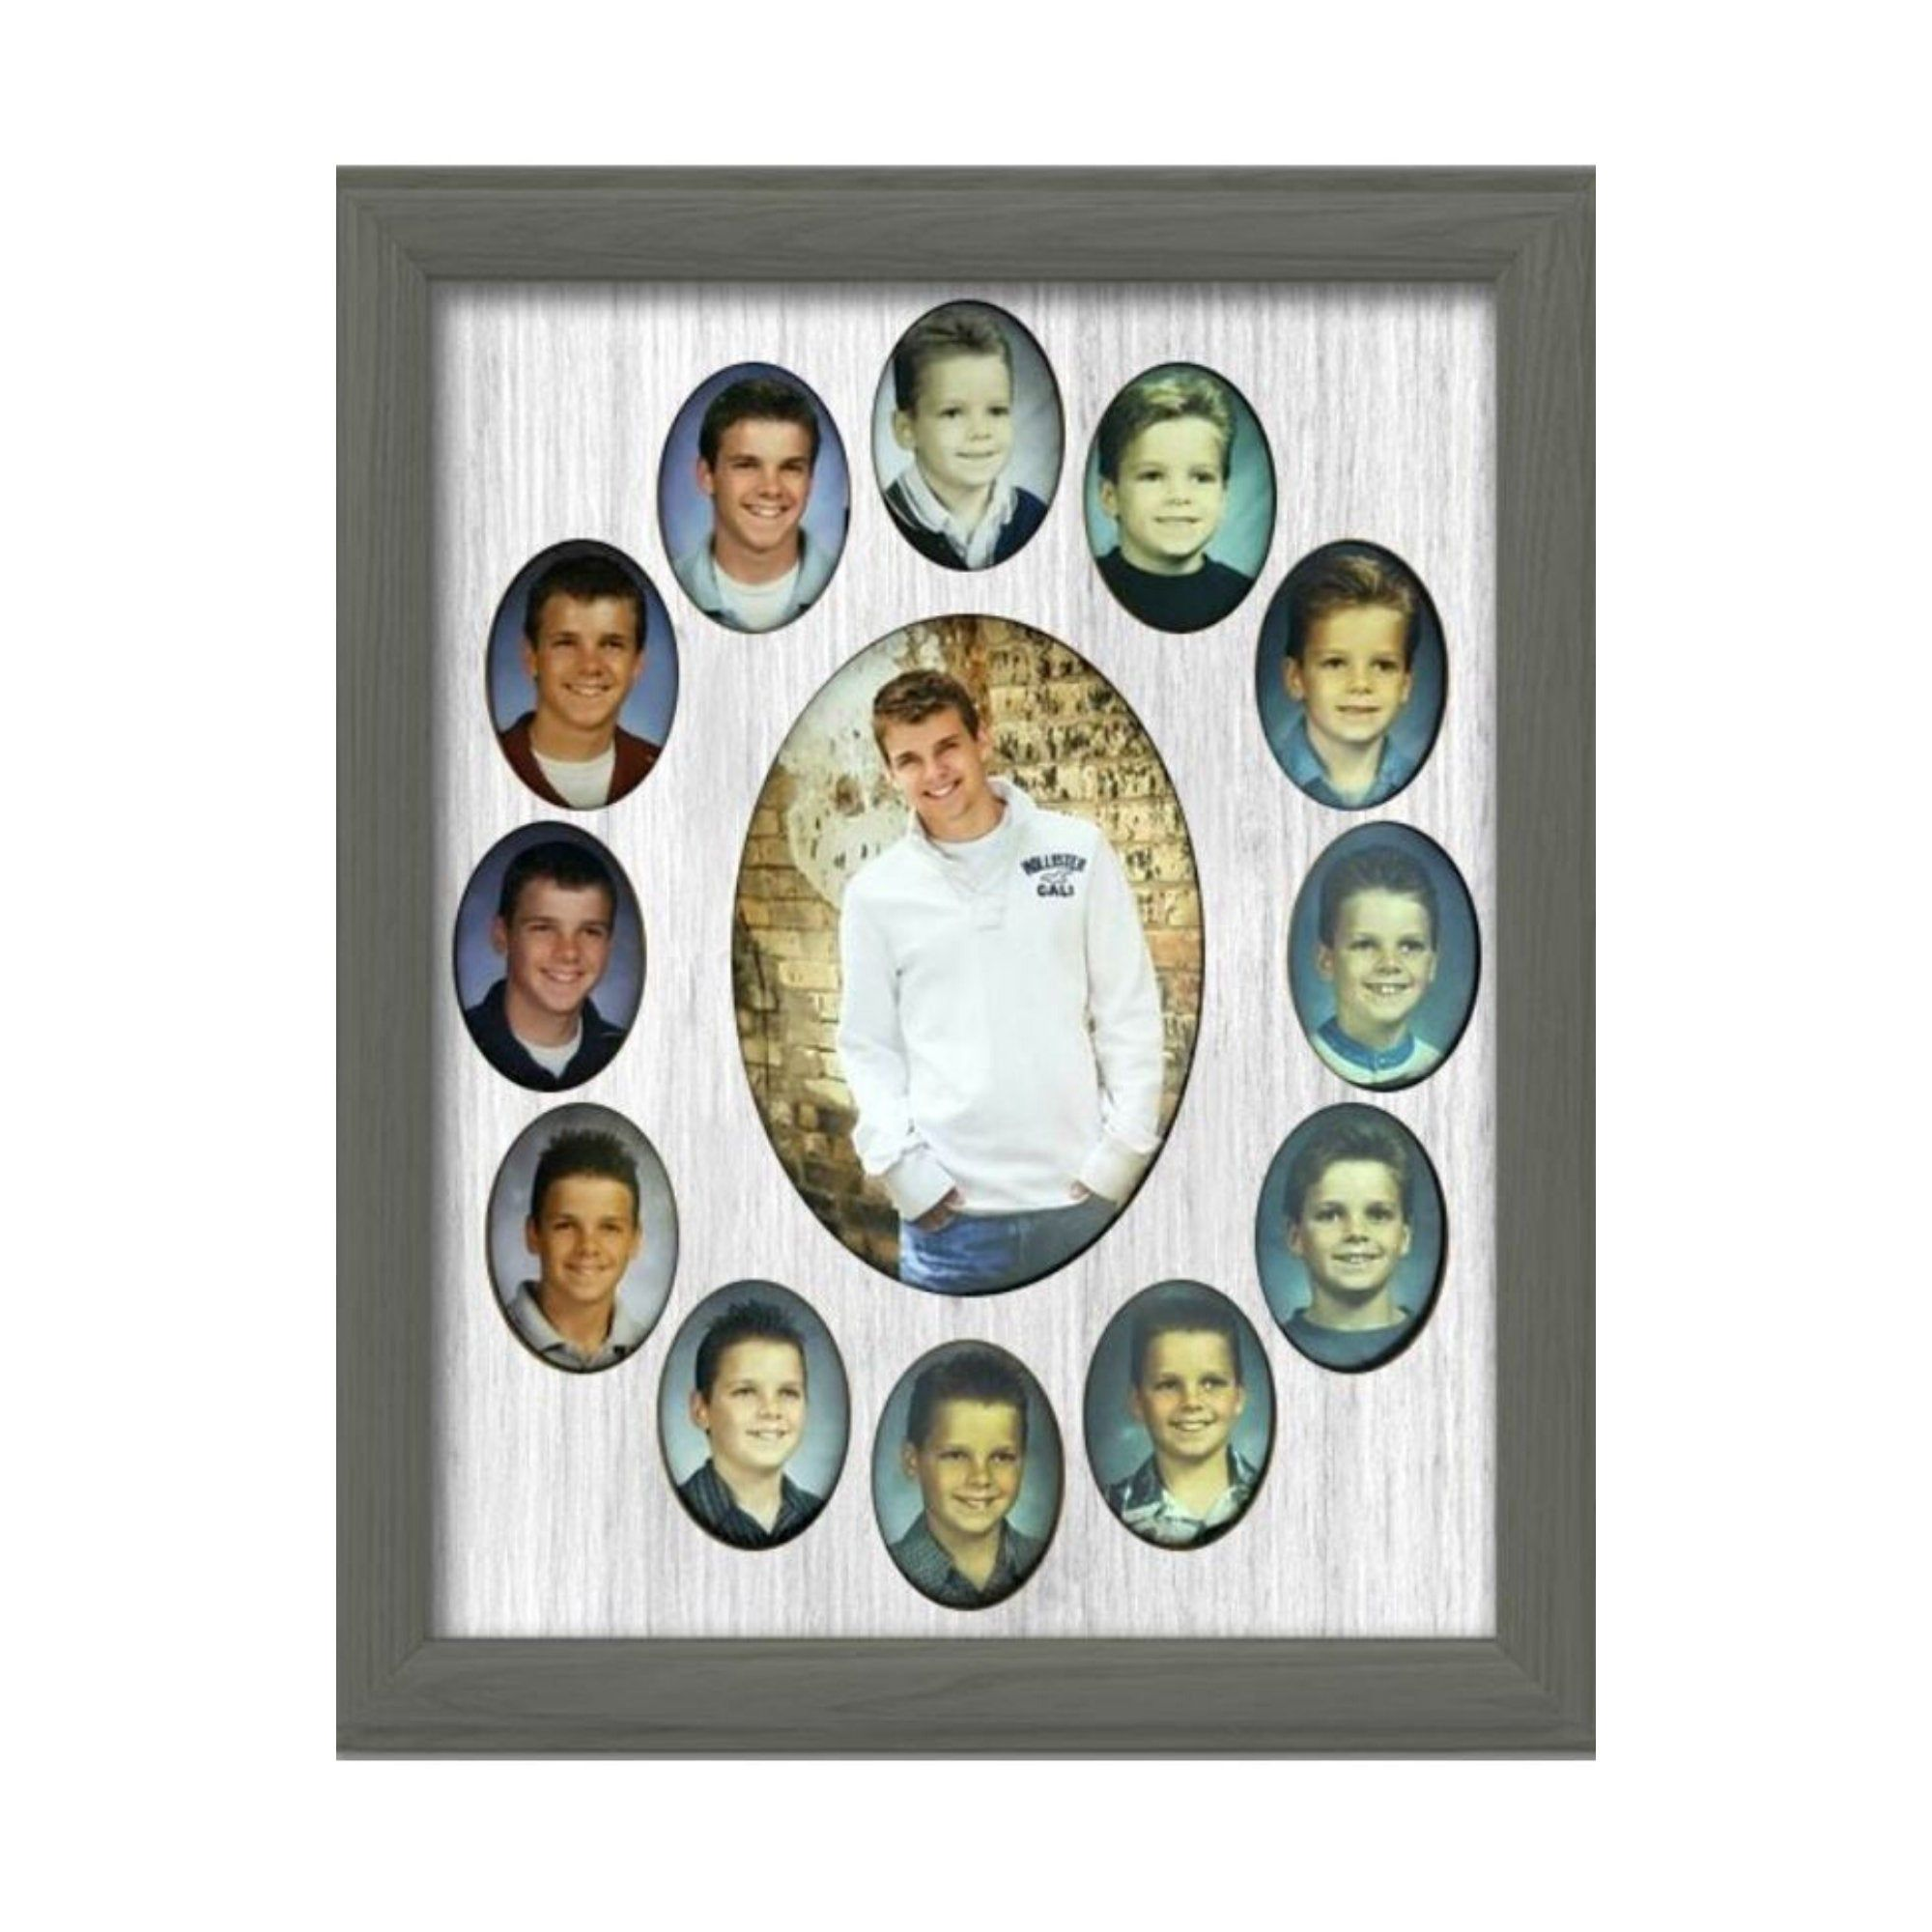 School Years Picture Frame 10 Color Options Shown With Light Gray Frame White Insert Oval Graduation Collage K 12 11x14 In 2020 School Years Picture Frame School Frame Frame